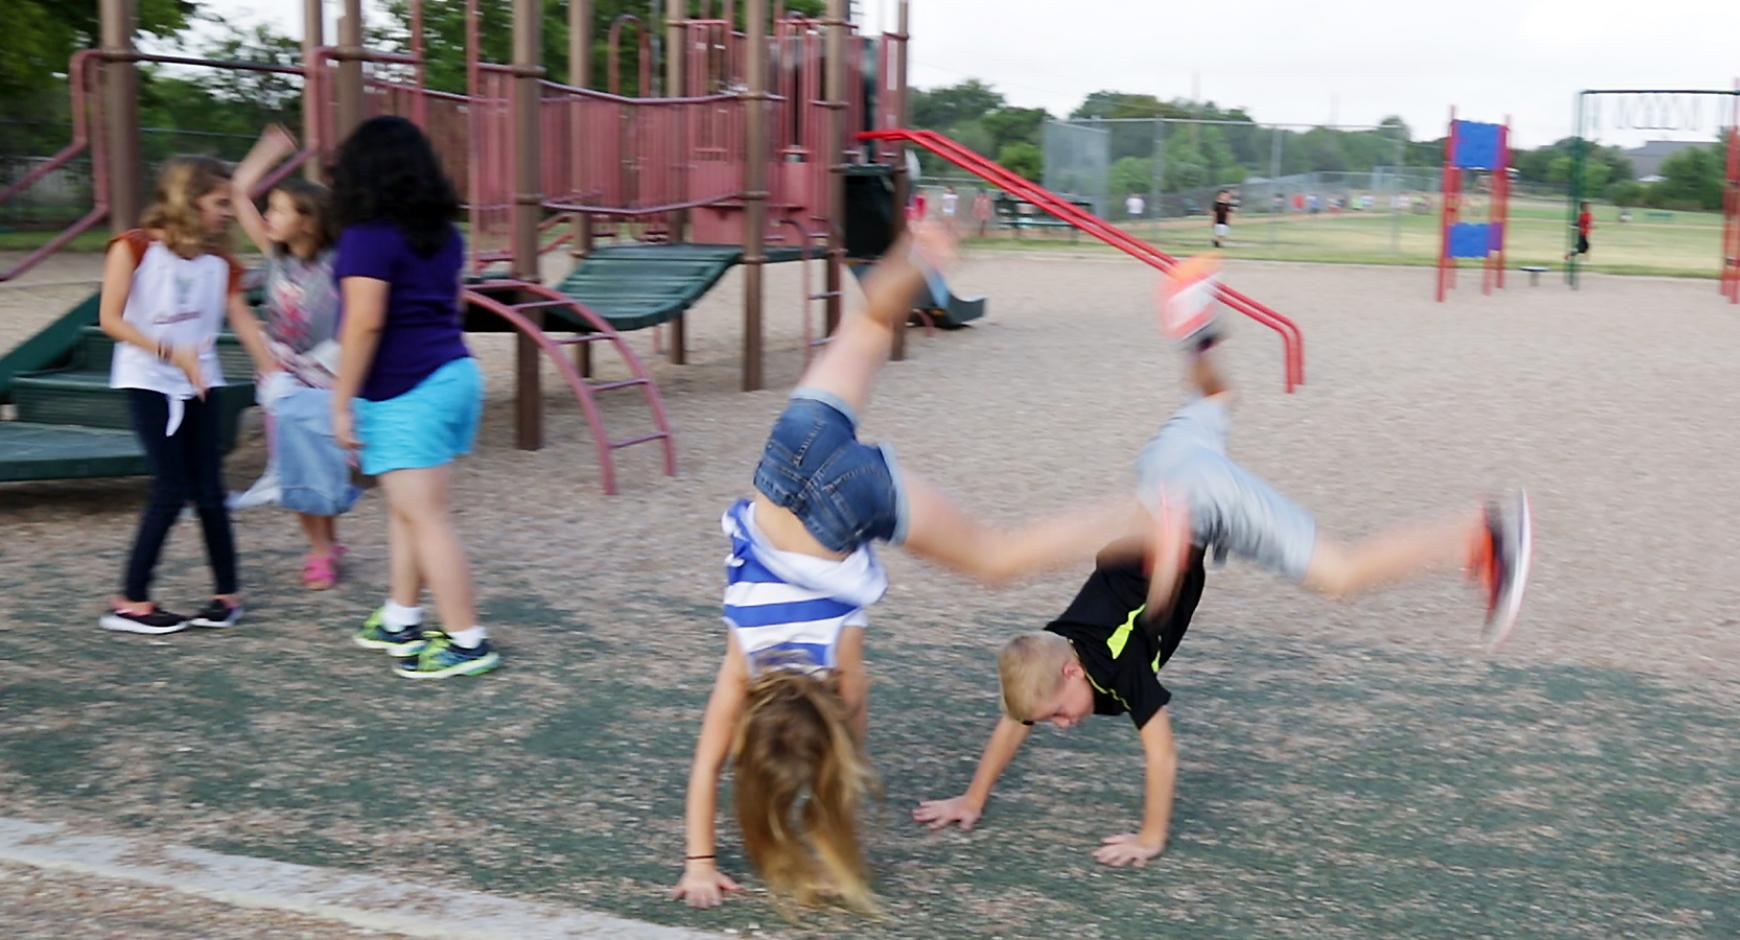 A boy and a girl turn cartwheels while other children run on a playground.